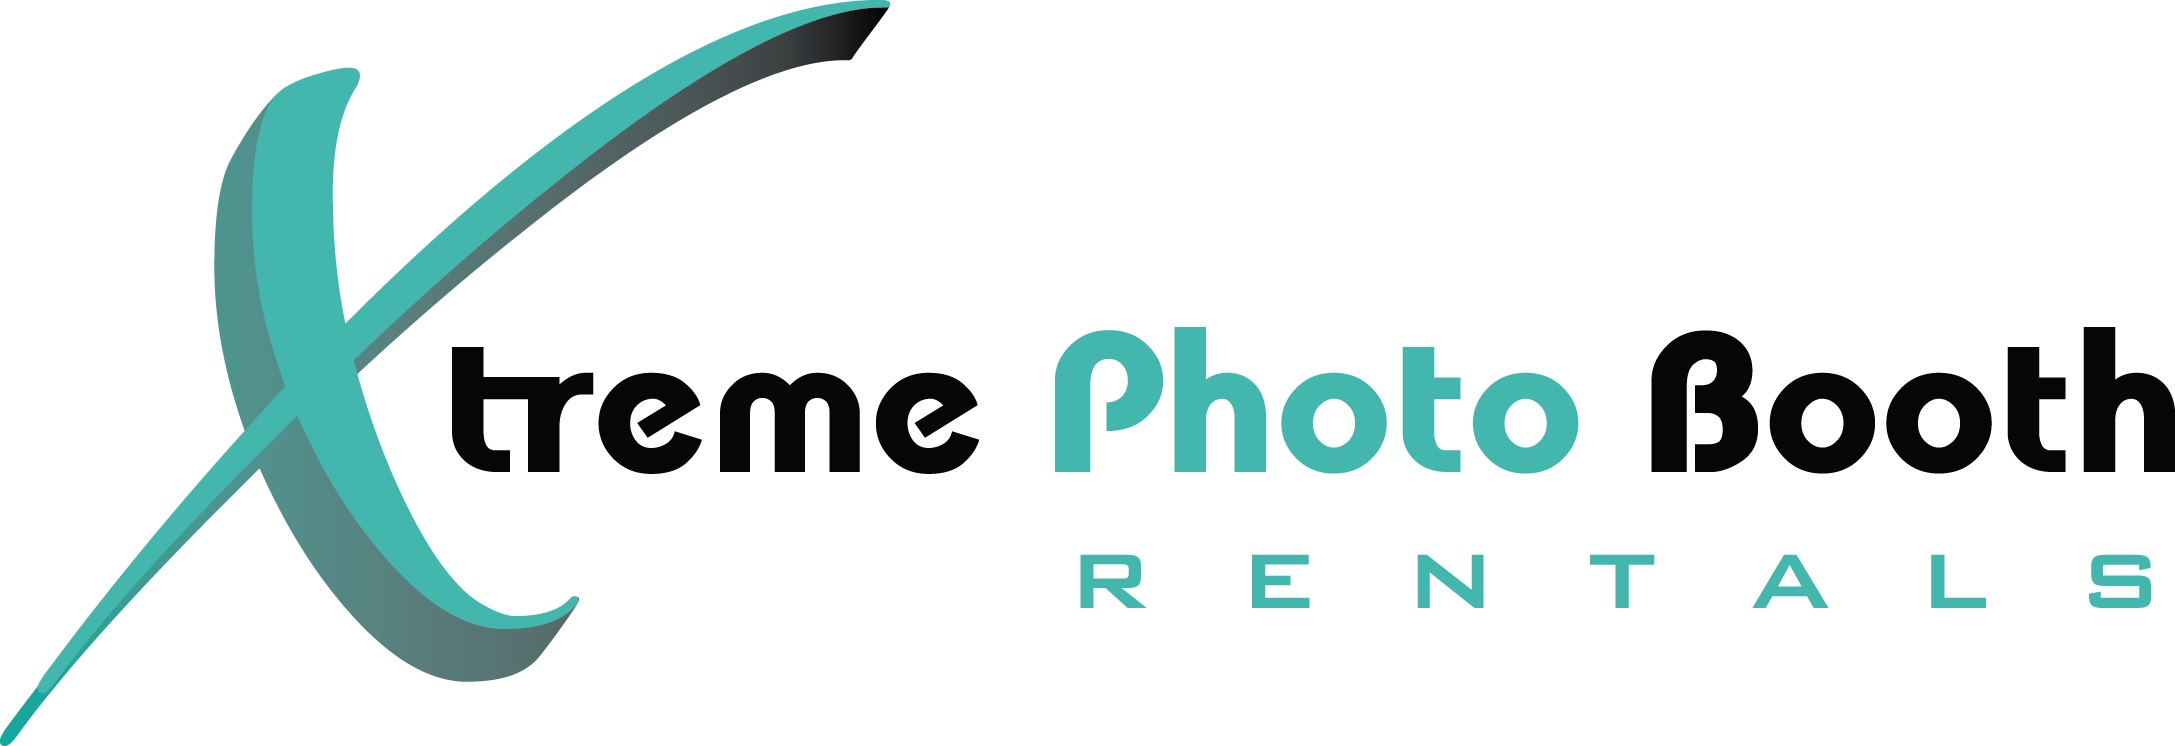 Xtreme Photo Booth Rentals